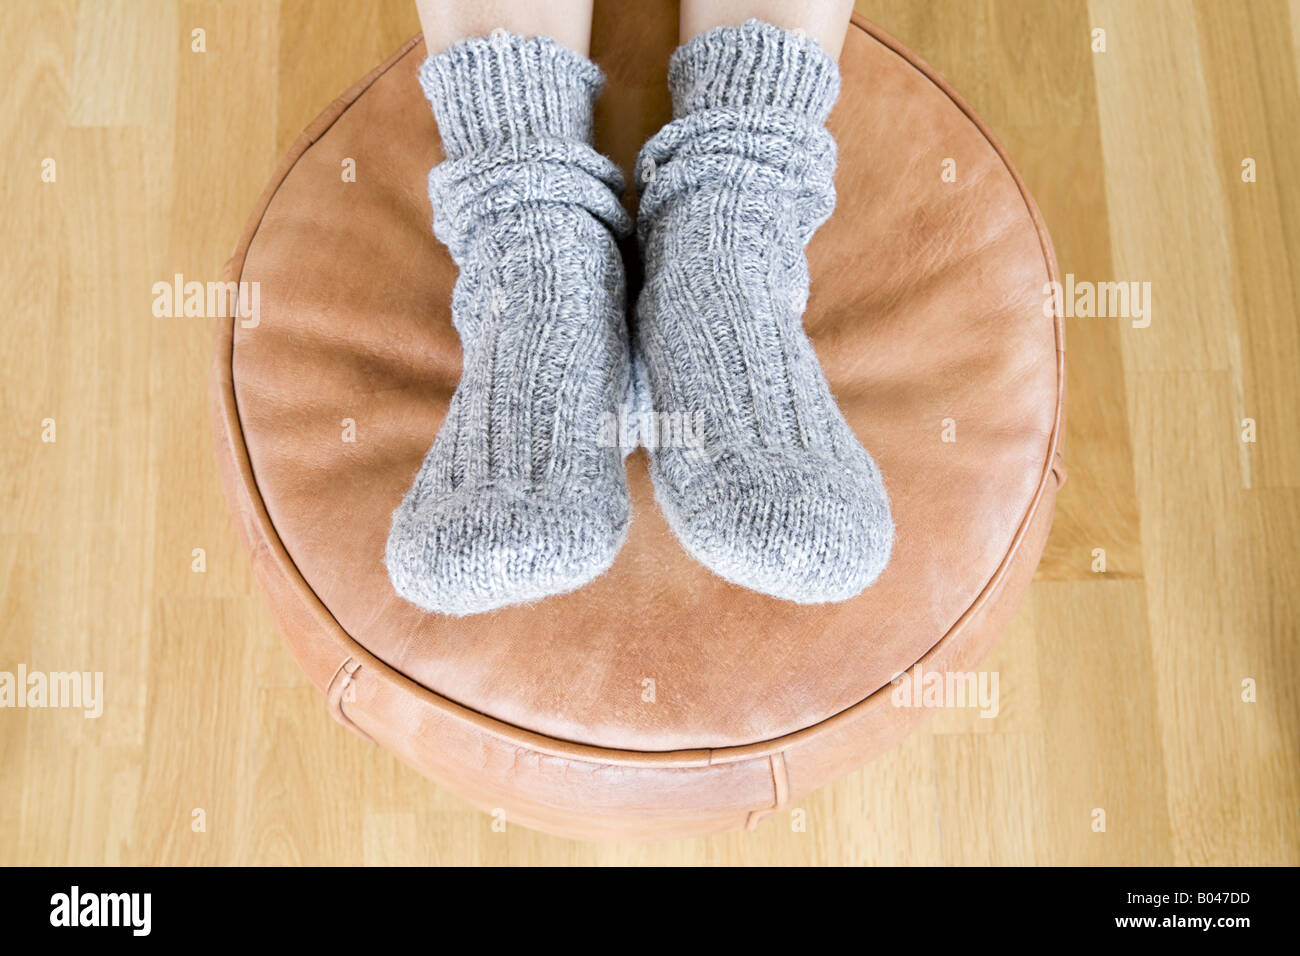 Person with feet on foot stool - Stock Image